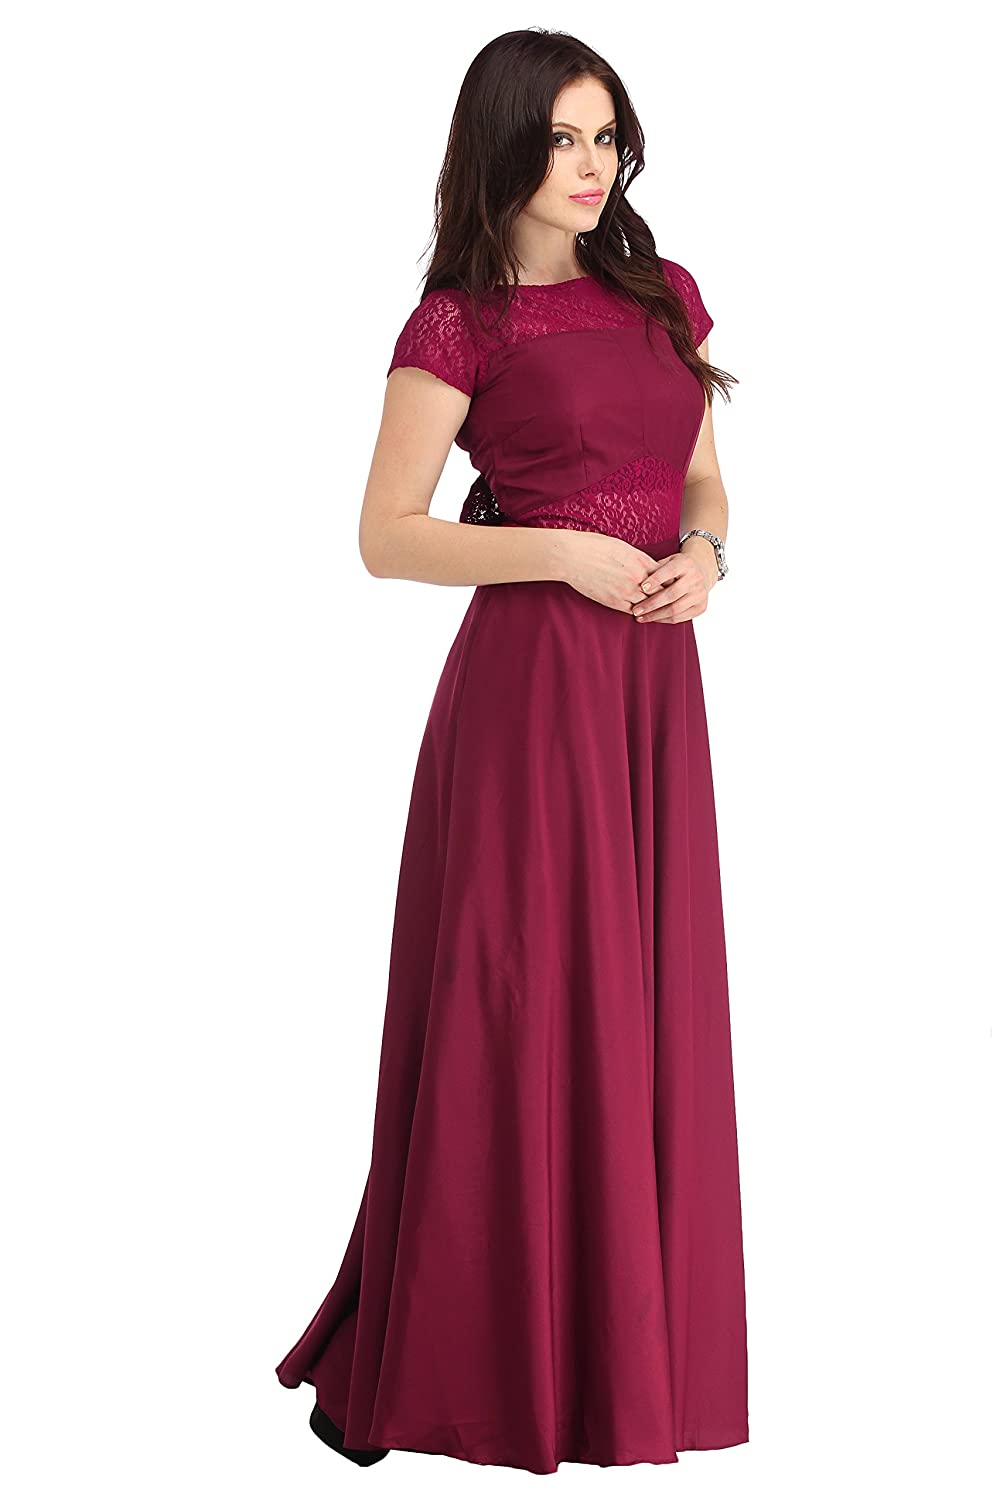 Raas Prêt Women's Crepe Flared Gown